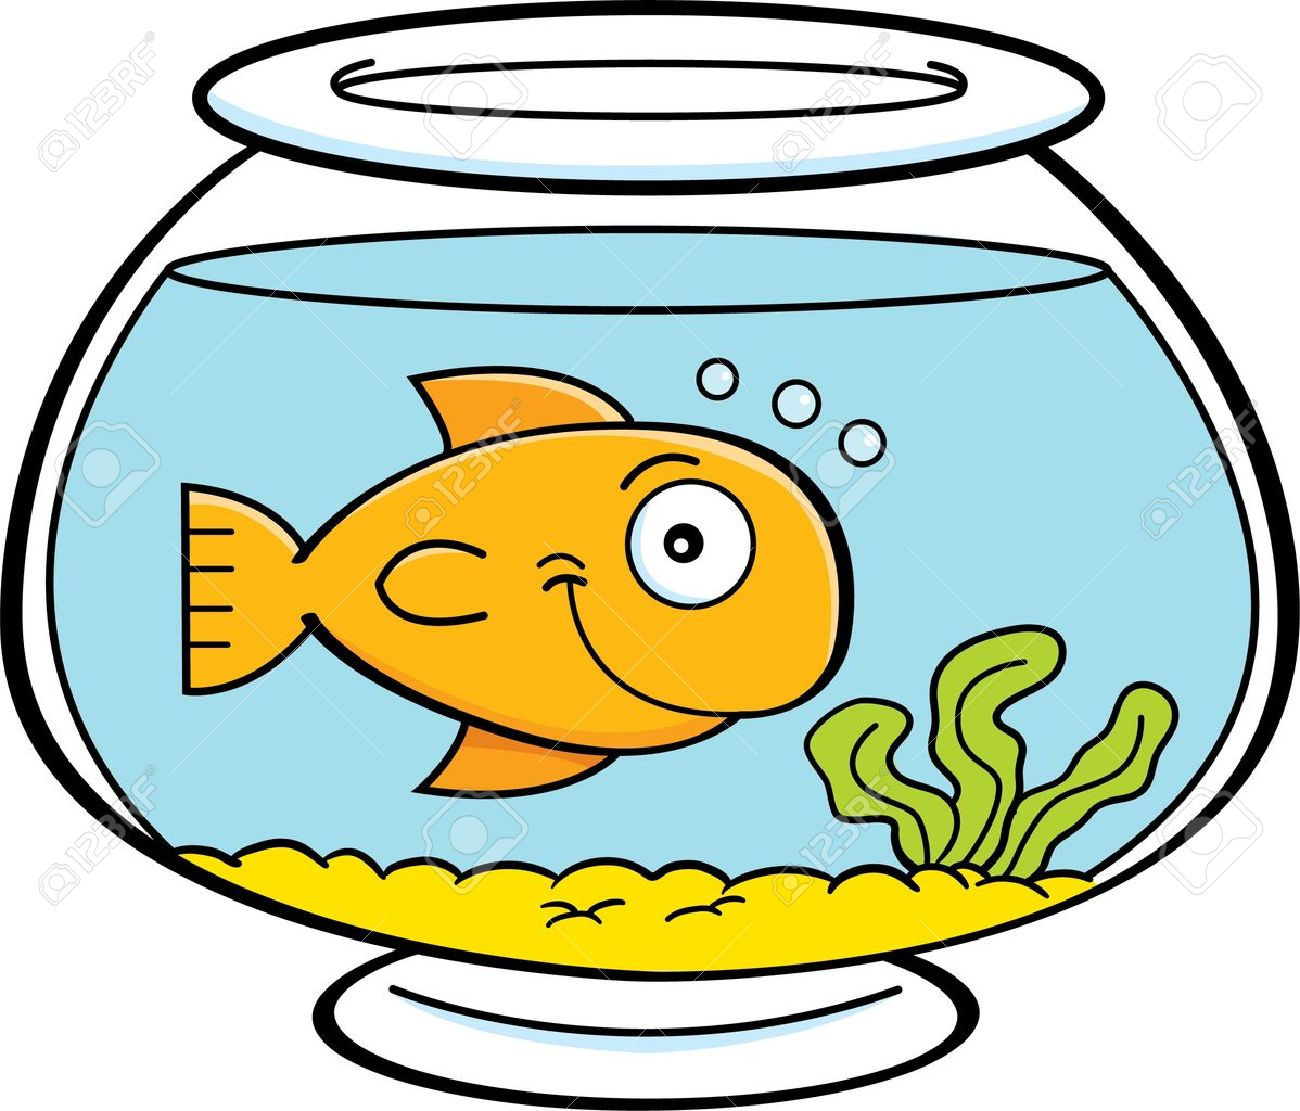 cartoon illustration of a fish in a fish bowl royalty free cliparts rh 123rf com fish bowl clipart black and white fish bowl clipart images